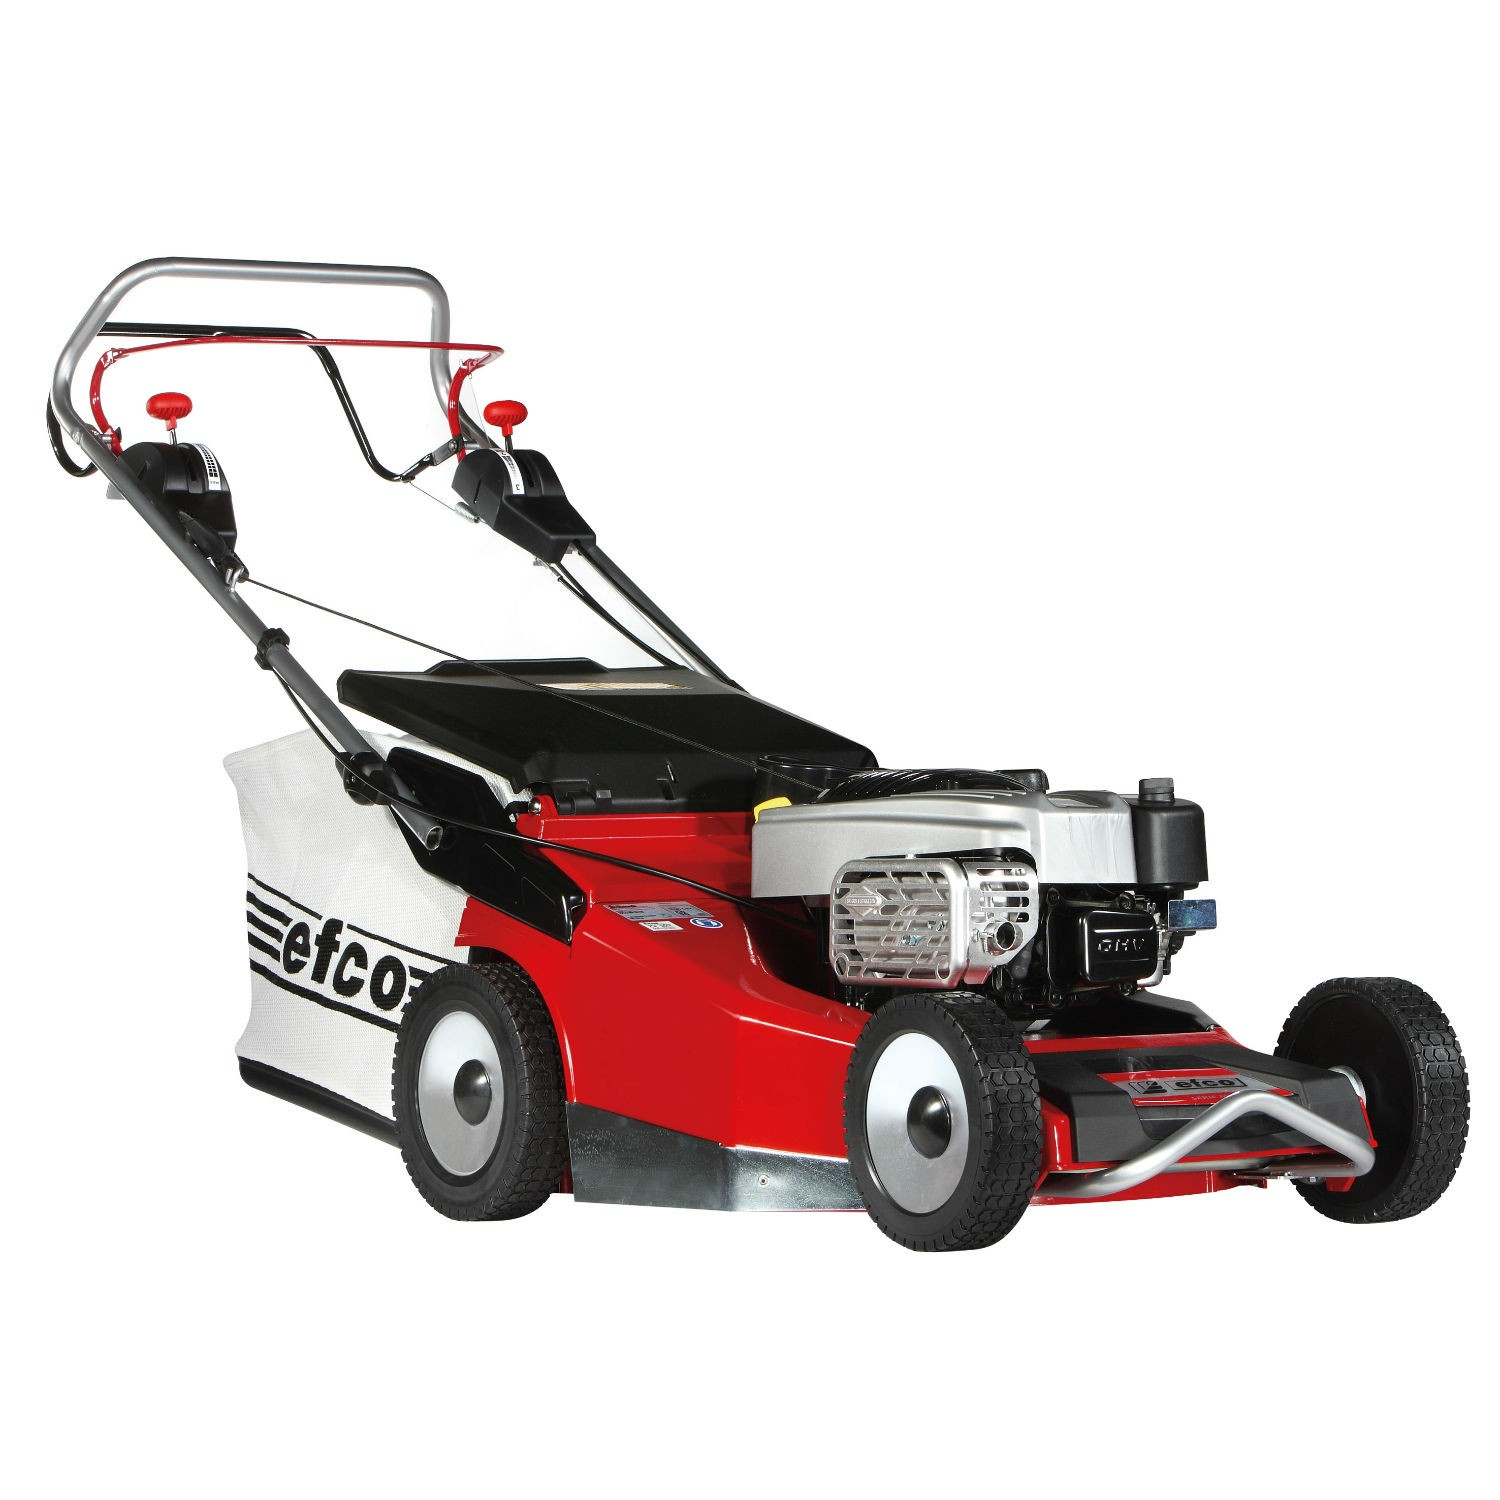 Efco MR55-TBI Self-Propelled Petrol Lawn Mower (Aluminium Deck)